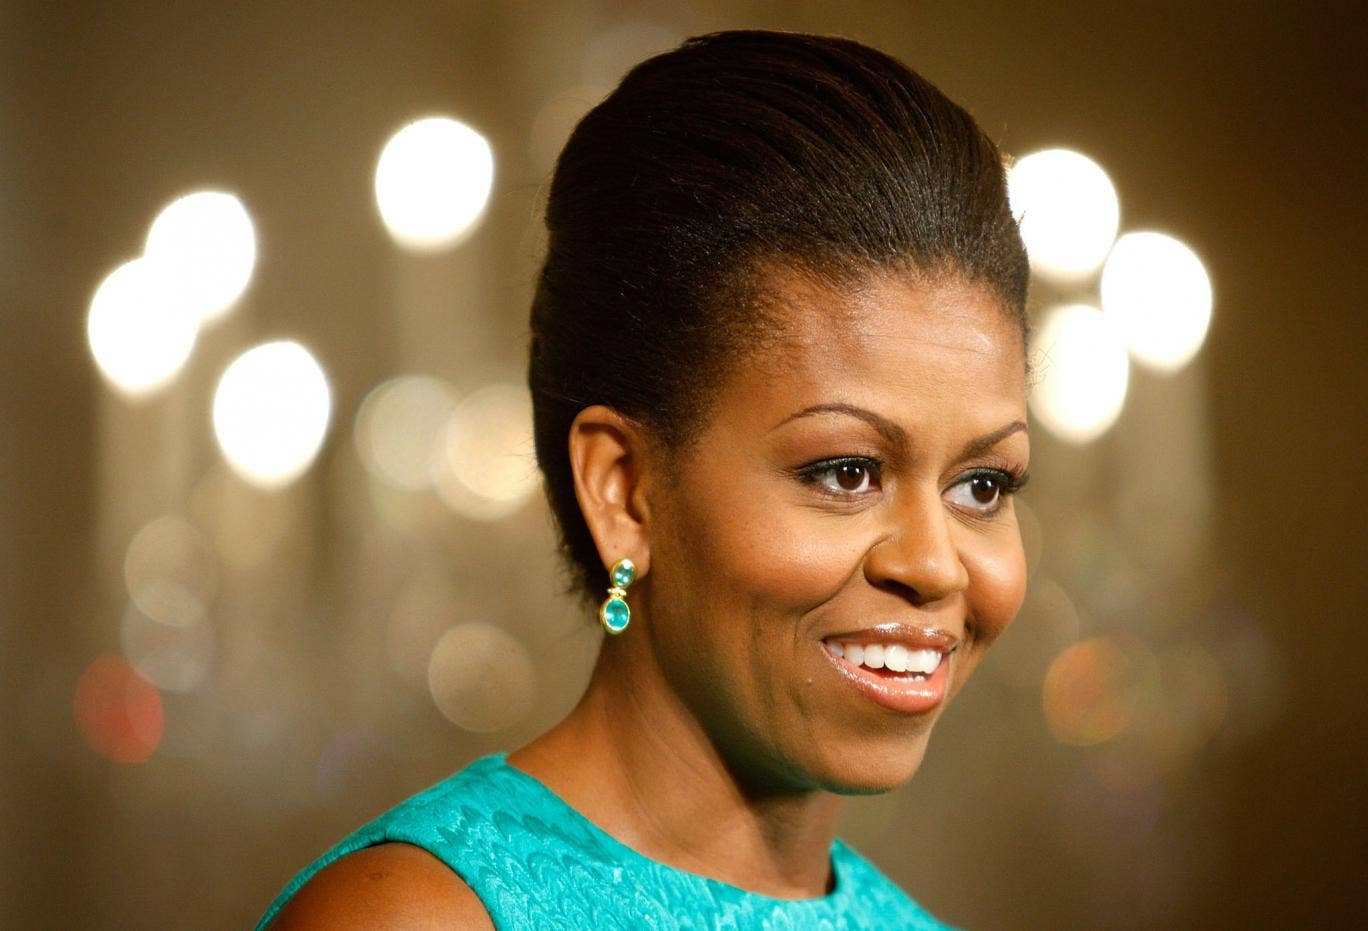 No, we're not sure we entirely believe her. But you've got to admire Michelle Obama's carefree attitude to turning 'the big 5-0'.